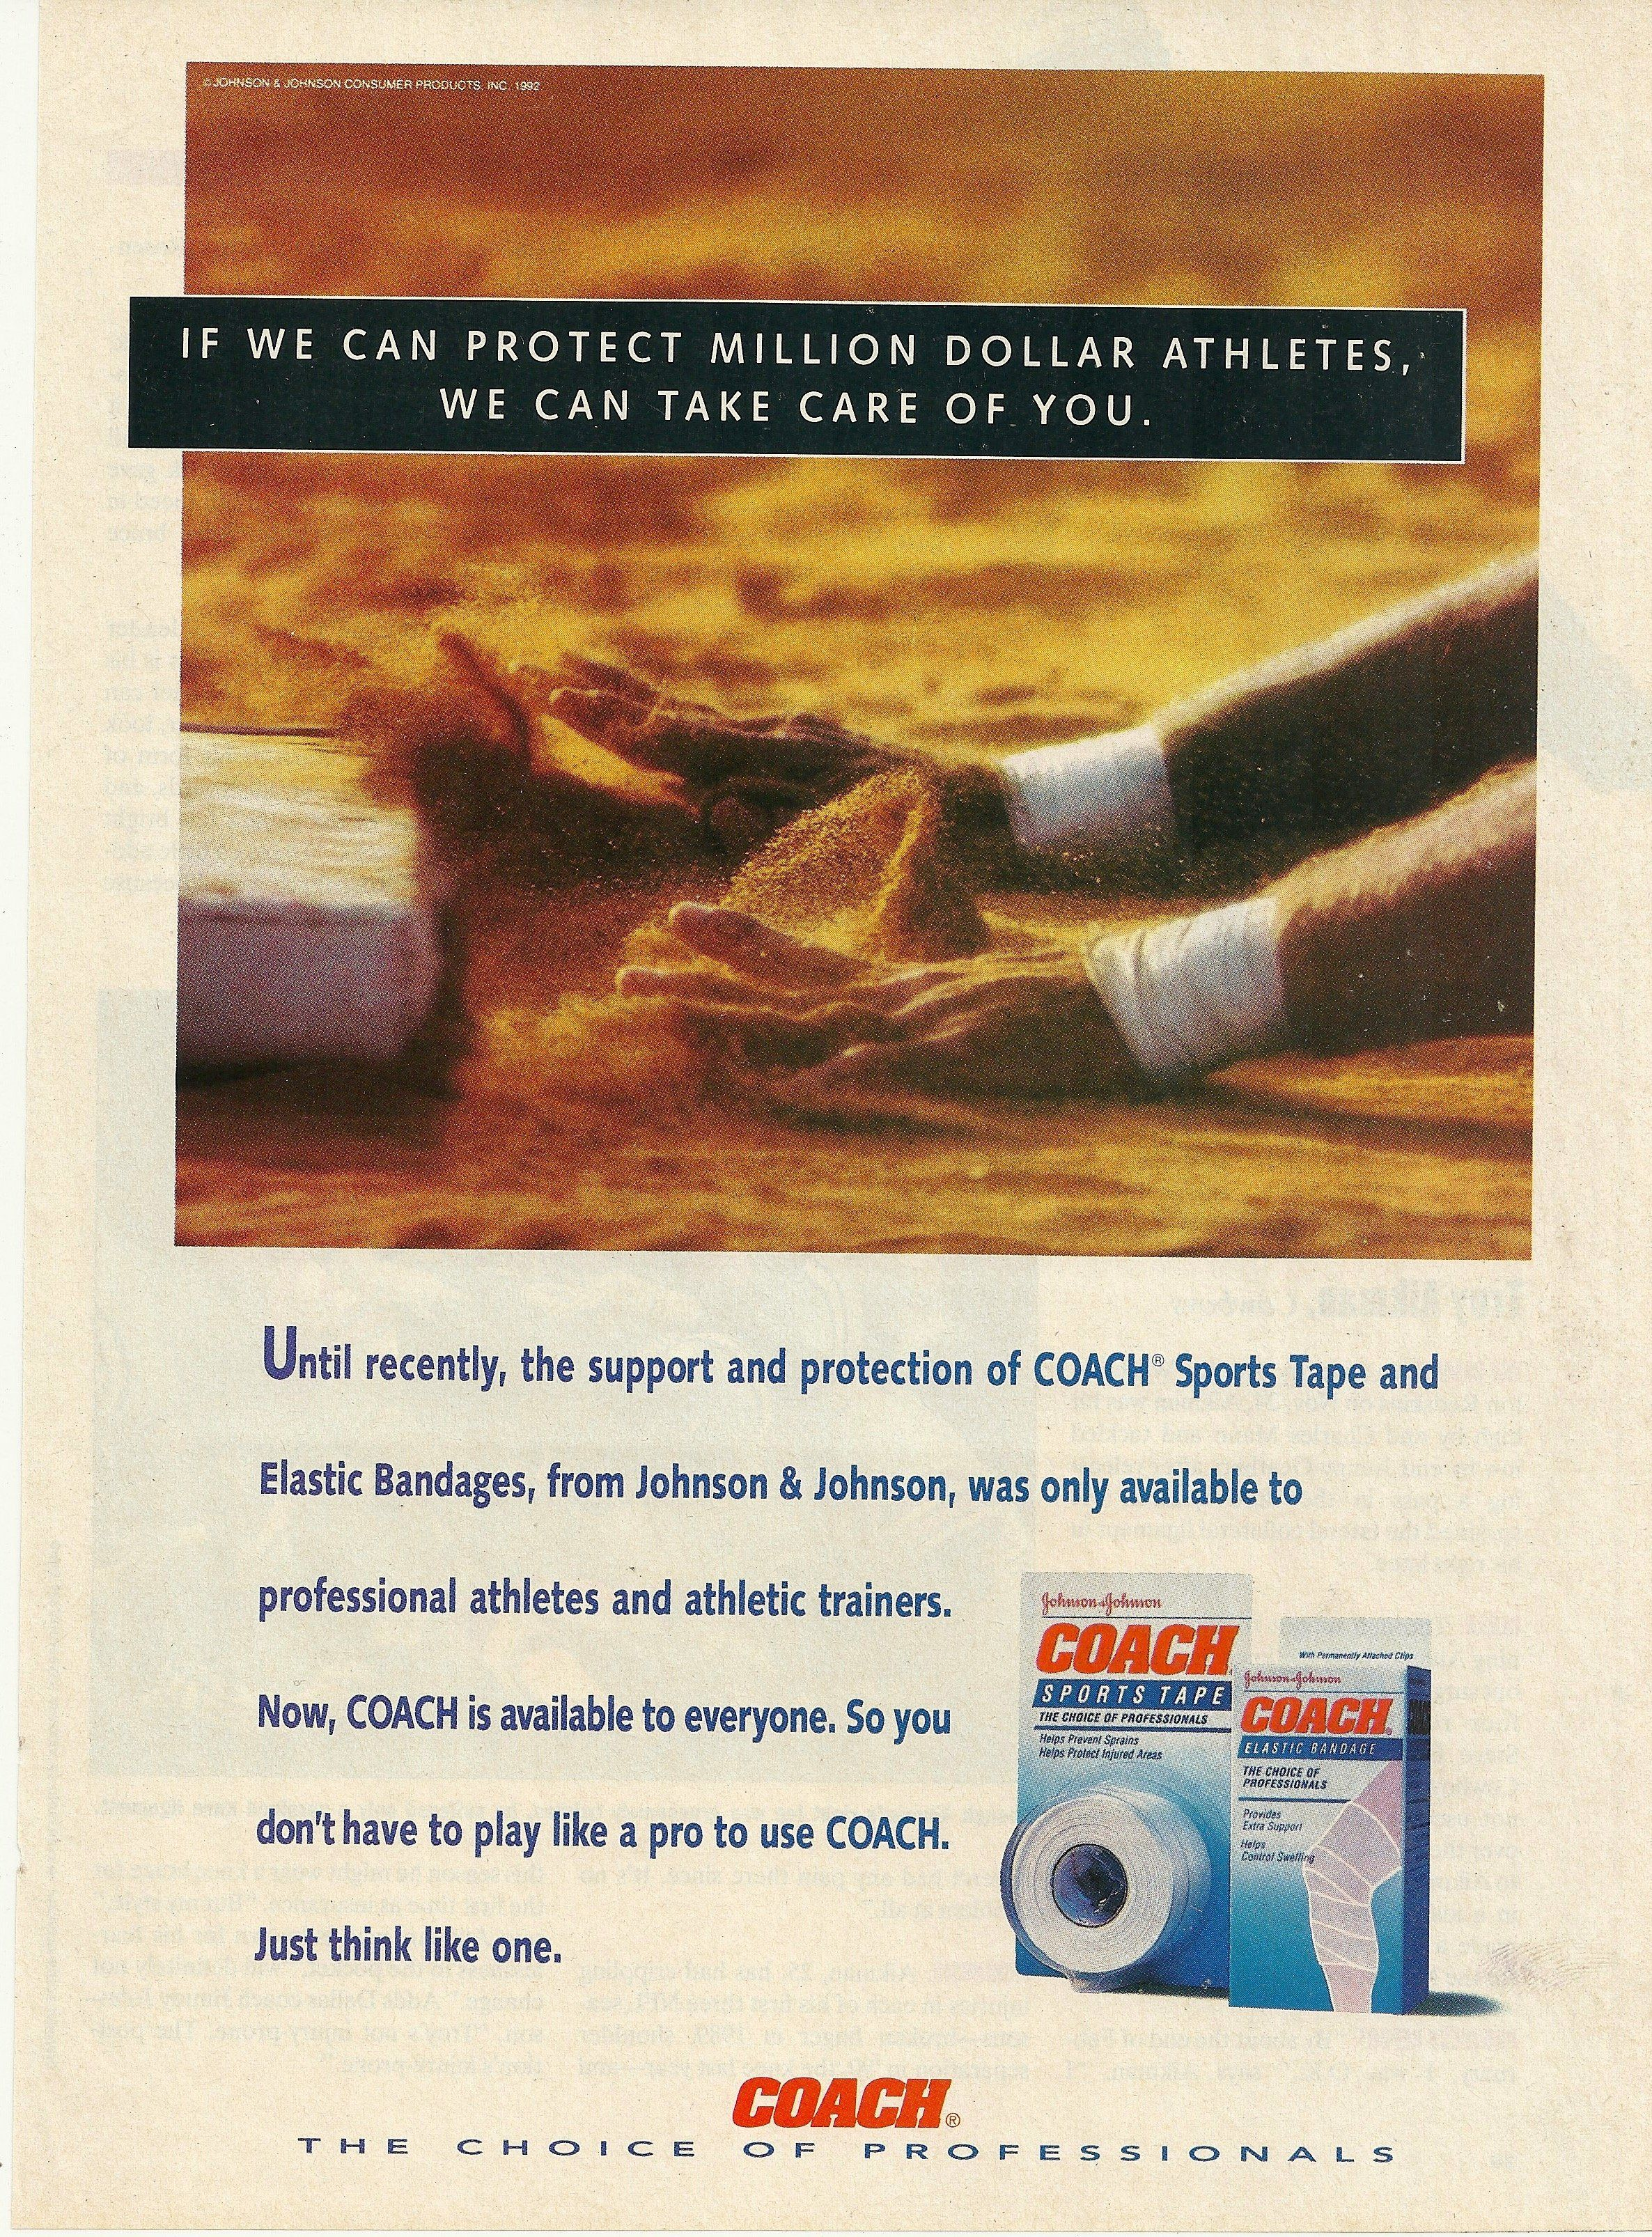 1992 Coach Sports Tape Bandages Vintage Print Ad Sports Tape Sports Coach Print Ads